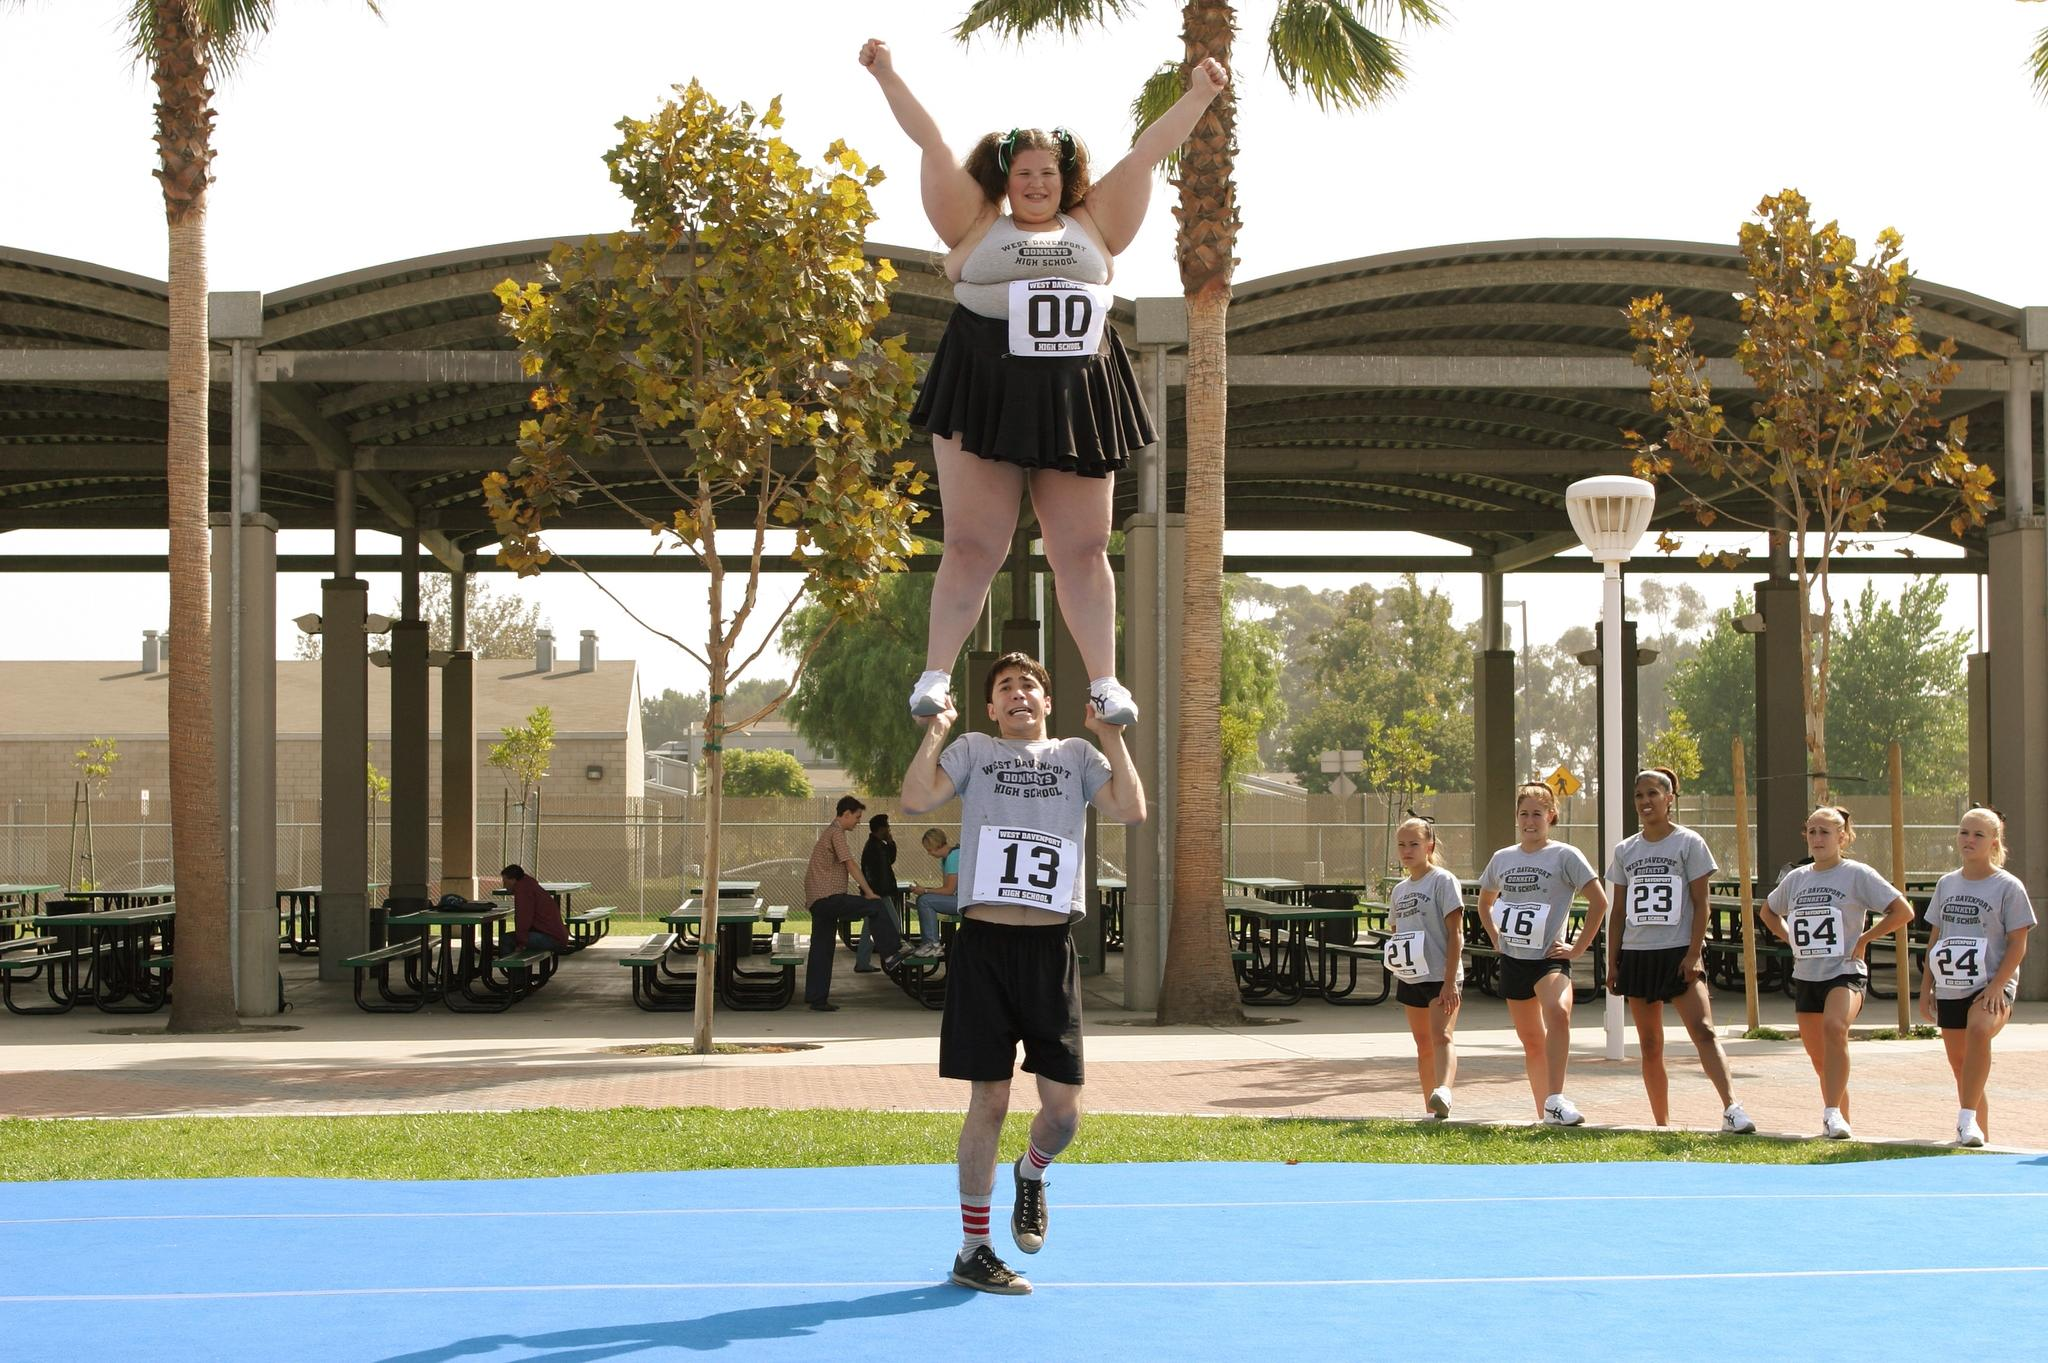 Fat Girl Funny Cheerleading Picture